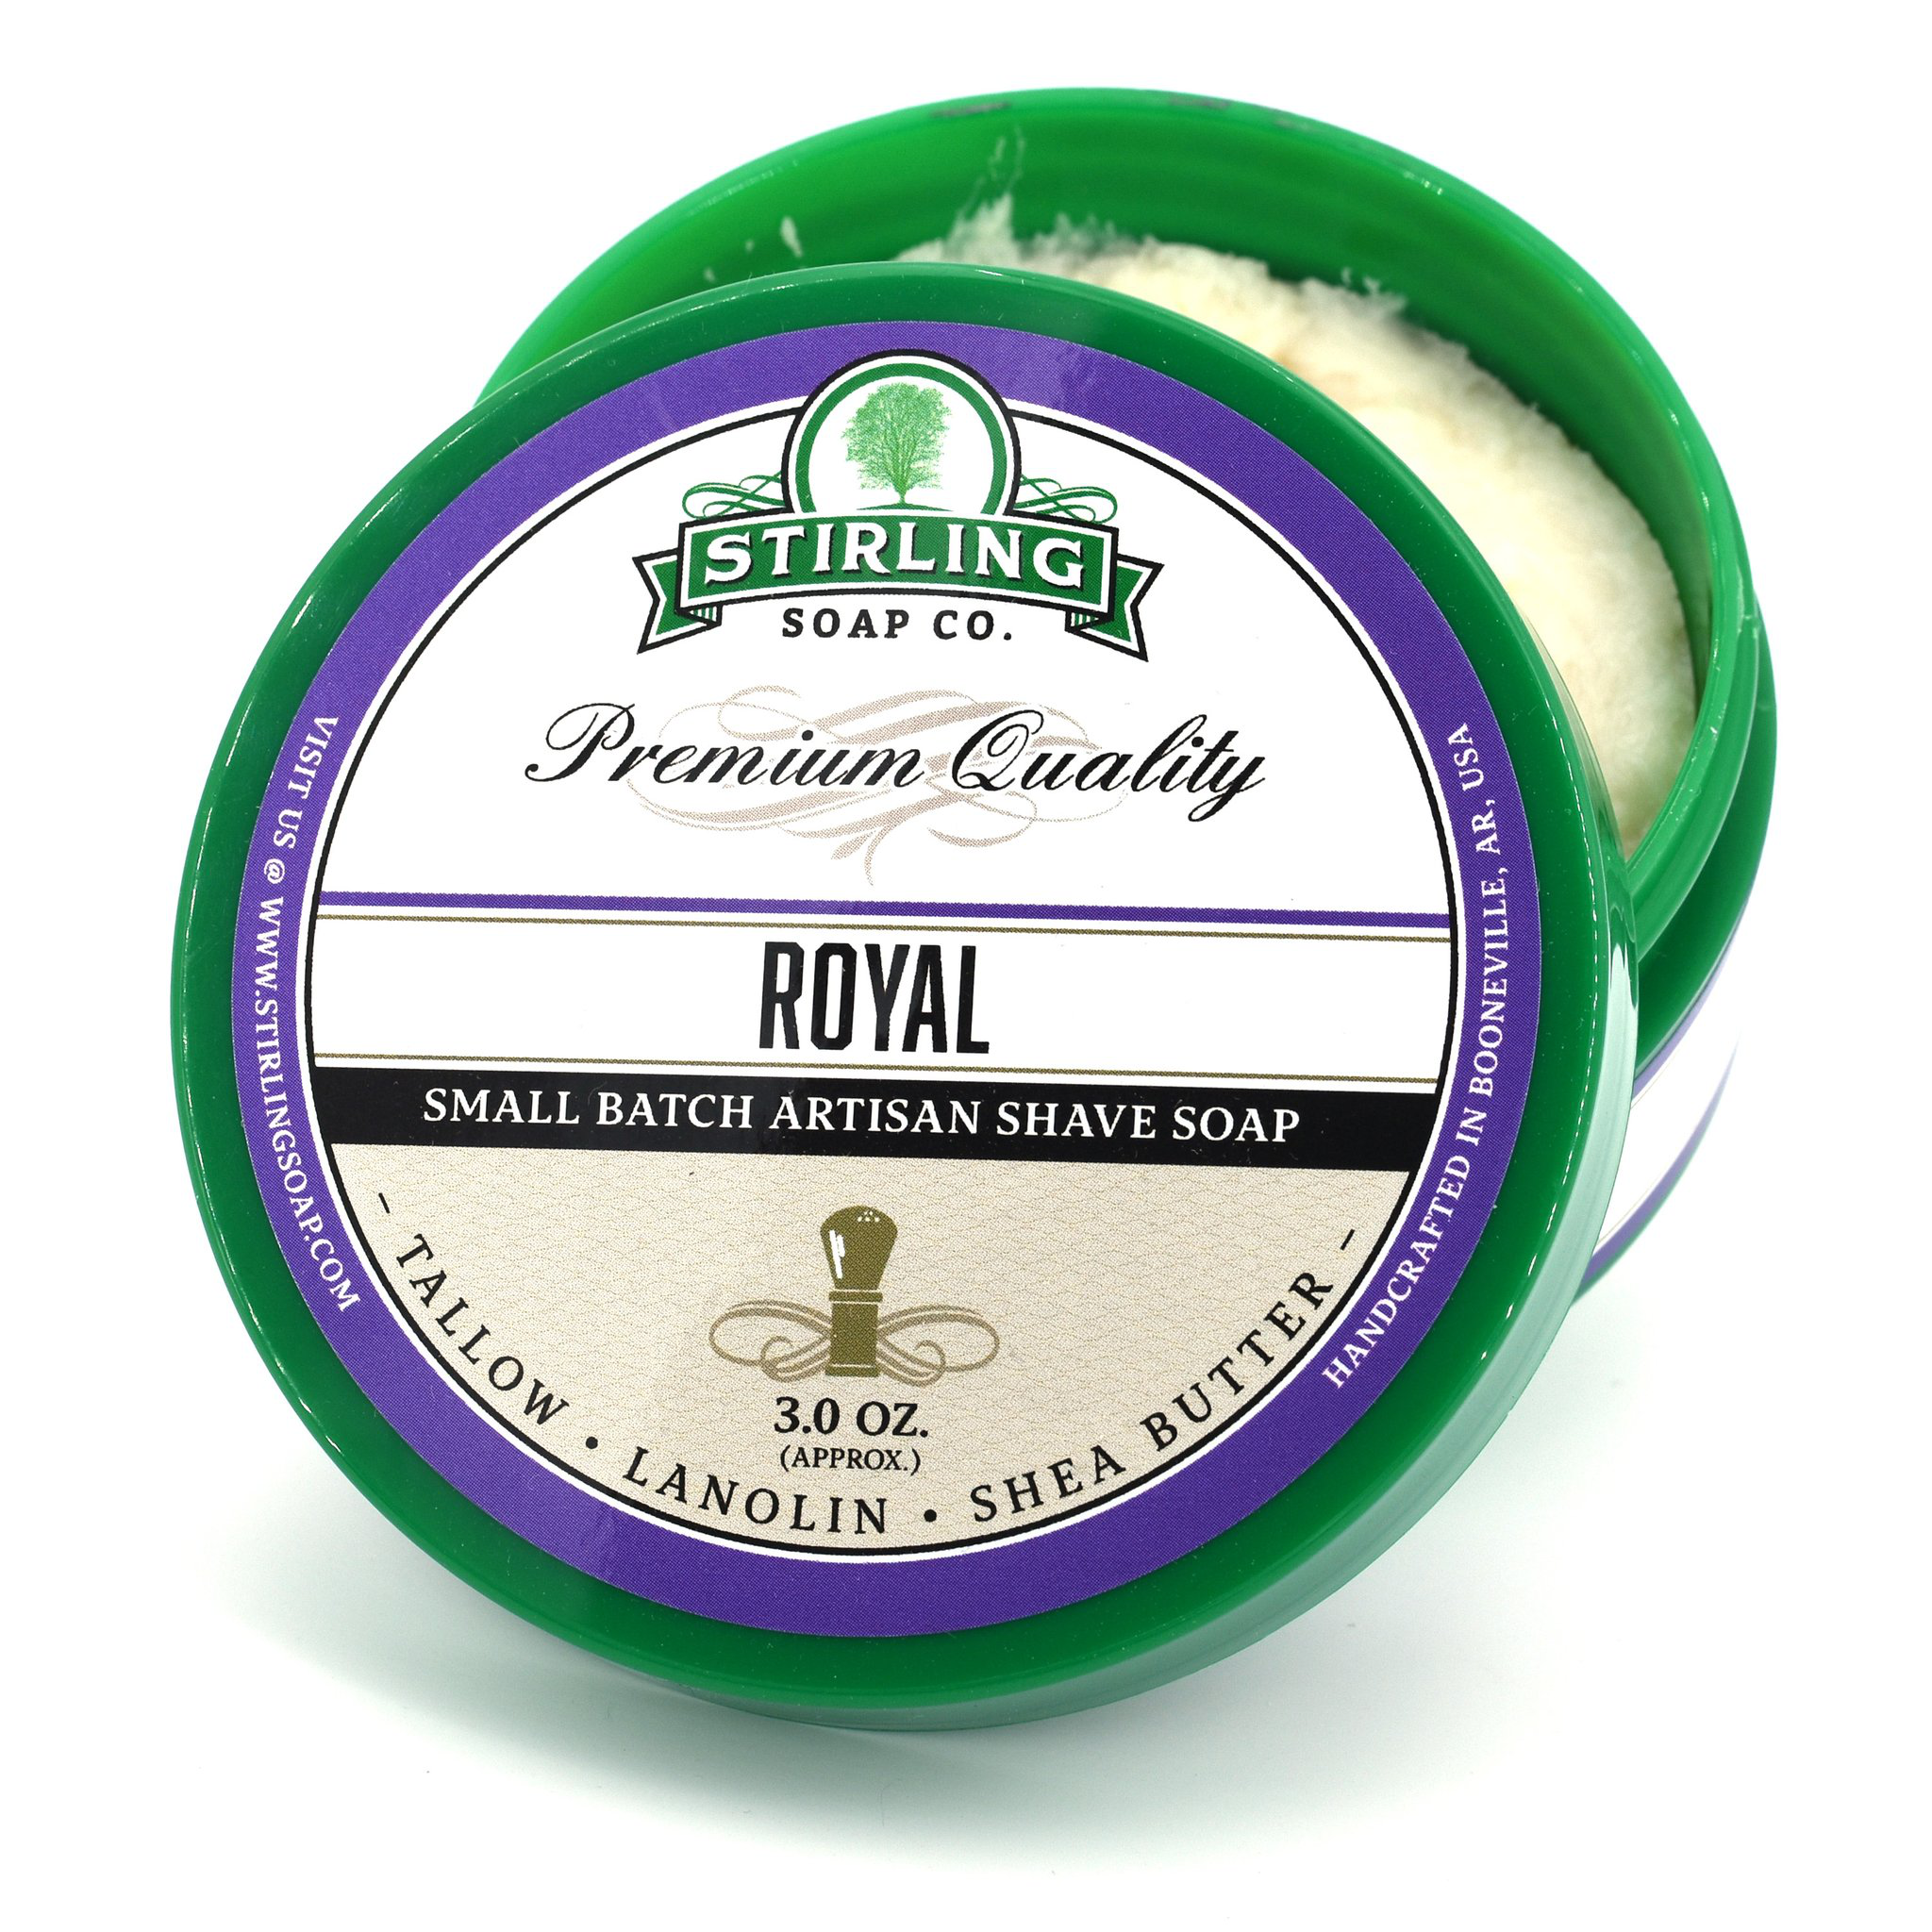 Stirling Soap Co. - Royal - Soap image